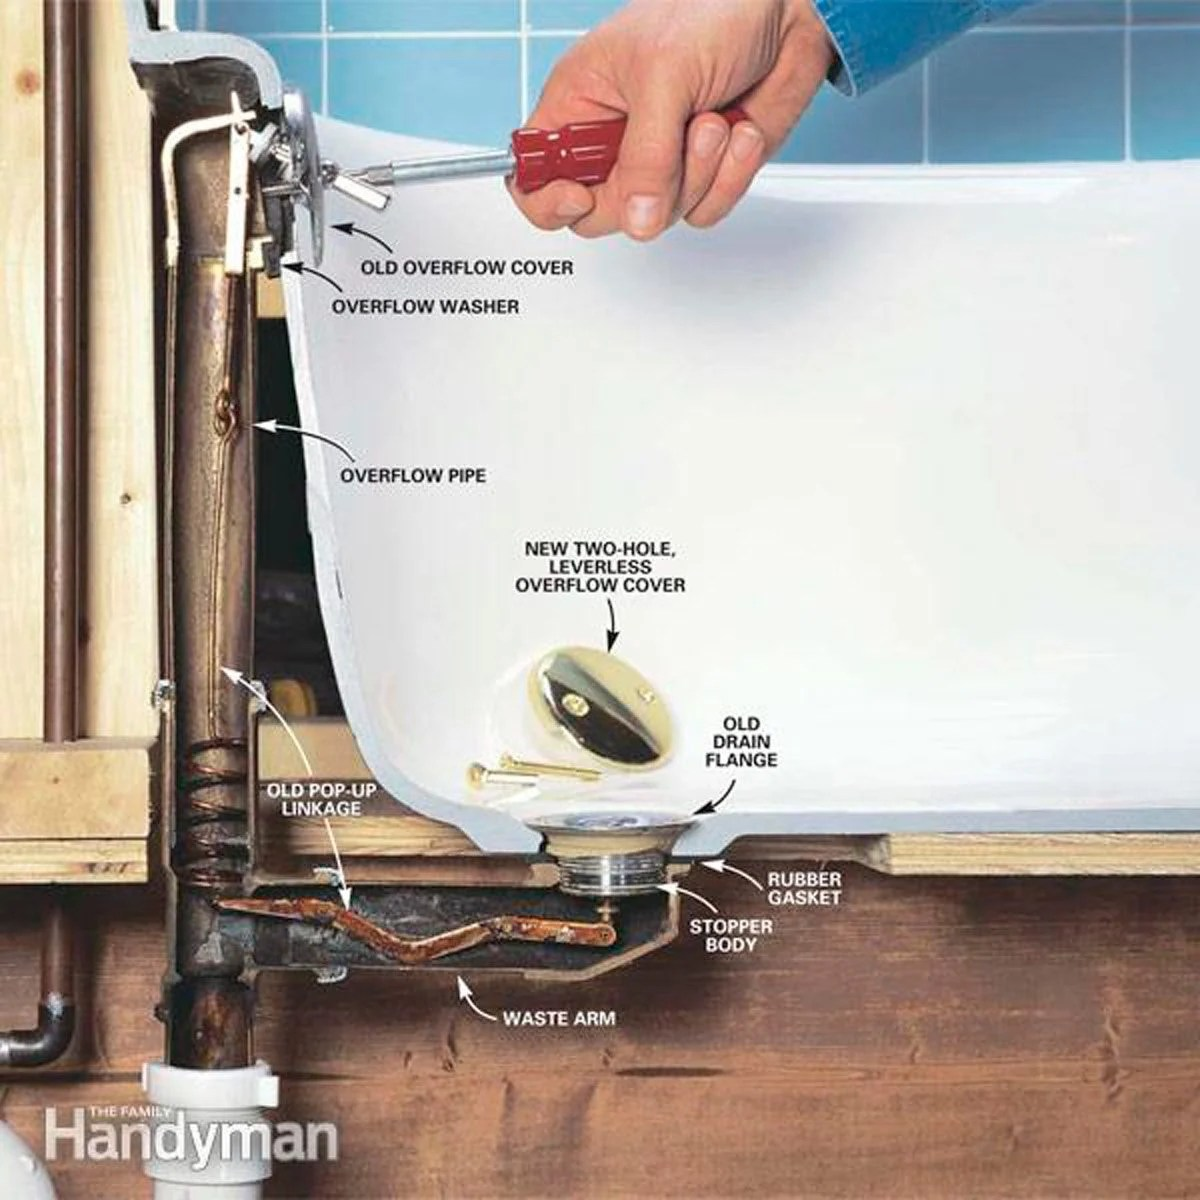 bathtub drain assembly diagram kicker cvr how to convert lever a lift and turn | the family handyman